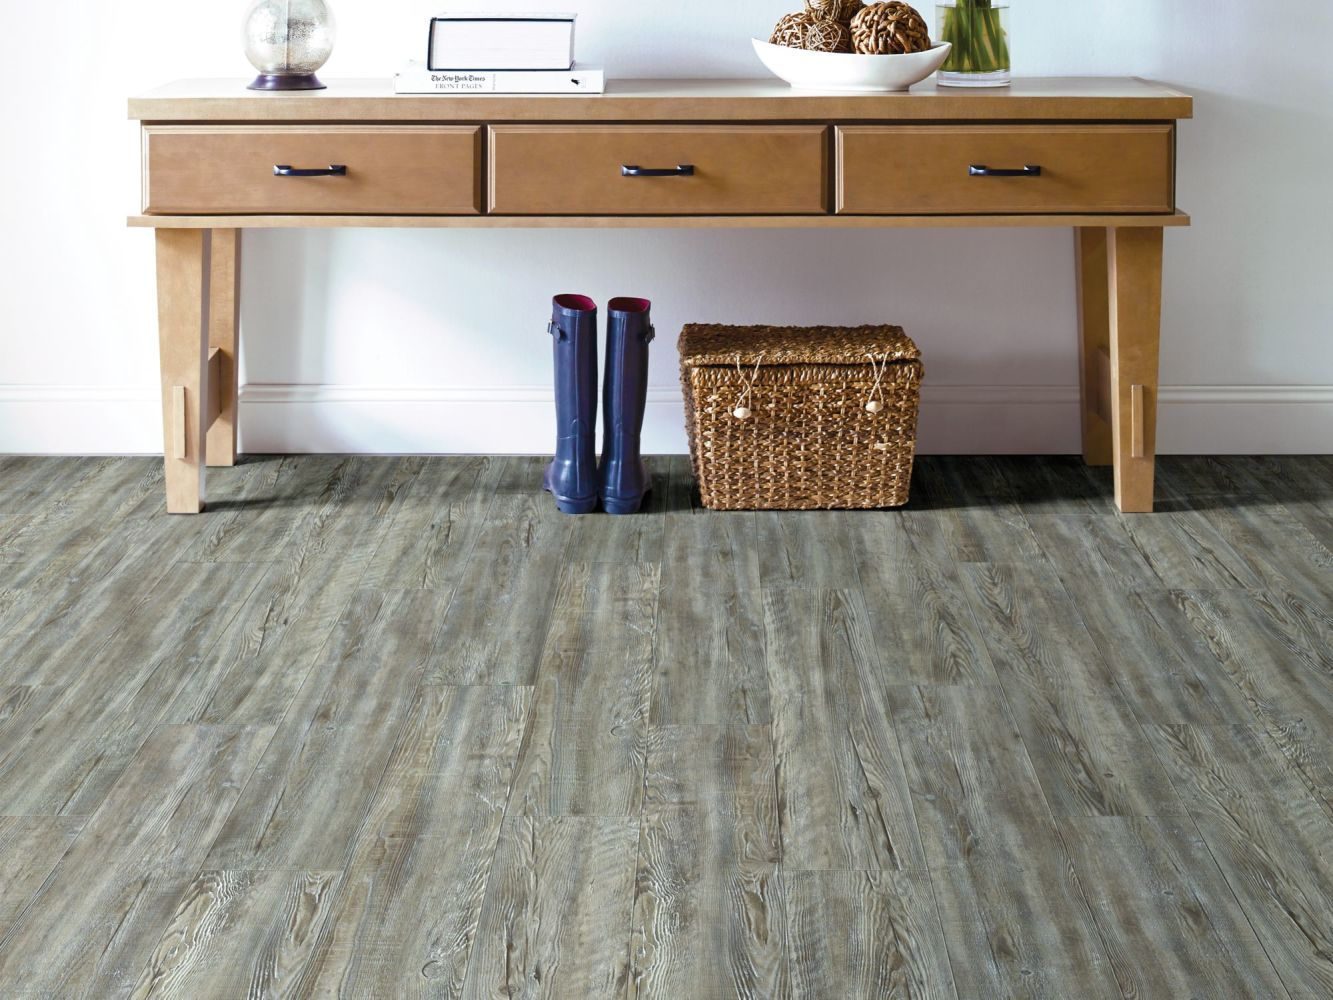 Shaw Floors Resilient Property Solutions Presto Plus Weathered Barnboard 00400_VE284